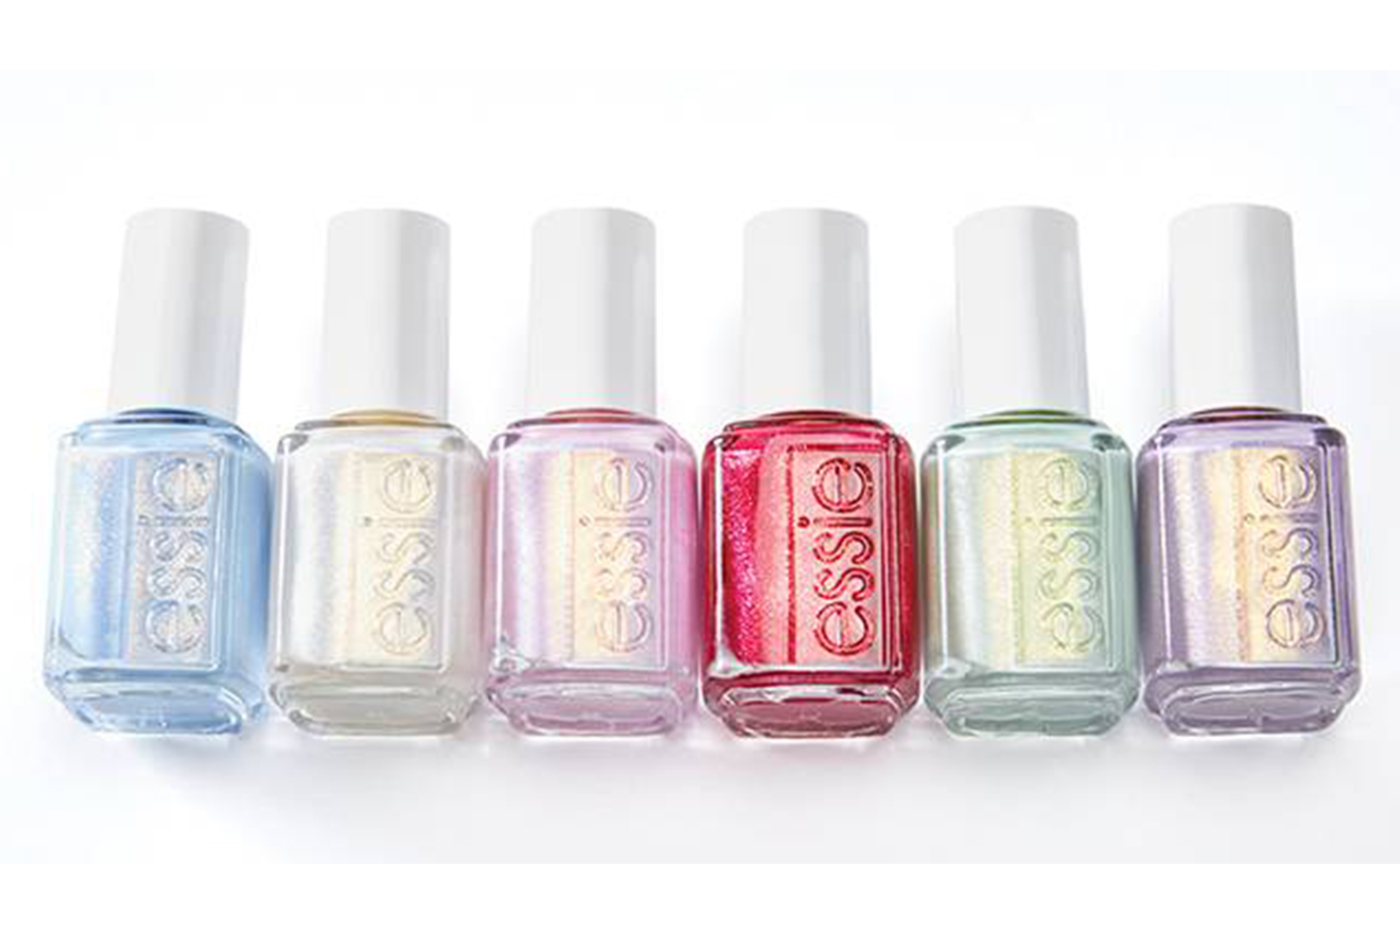 Flaunt salon-ready nails with Essie